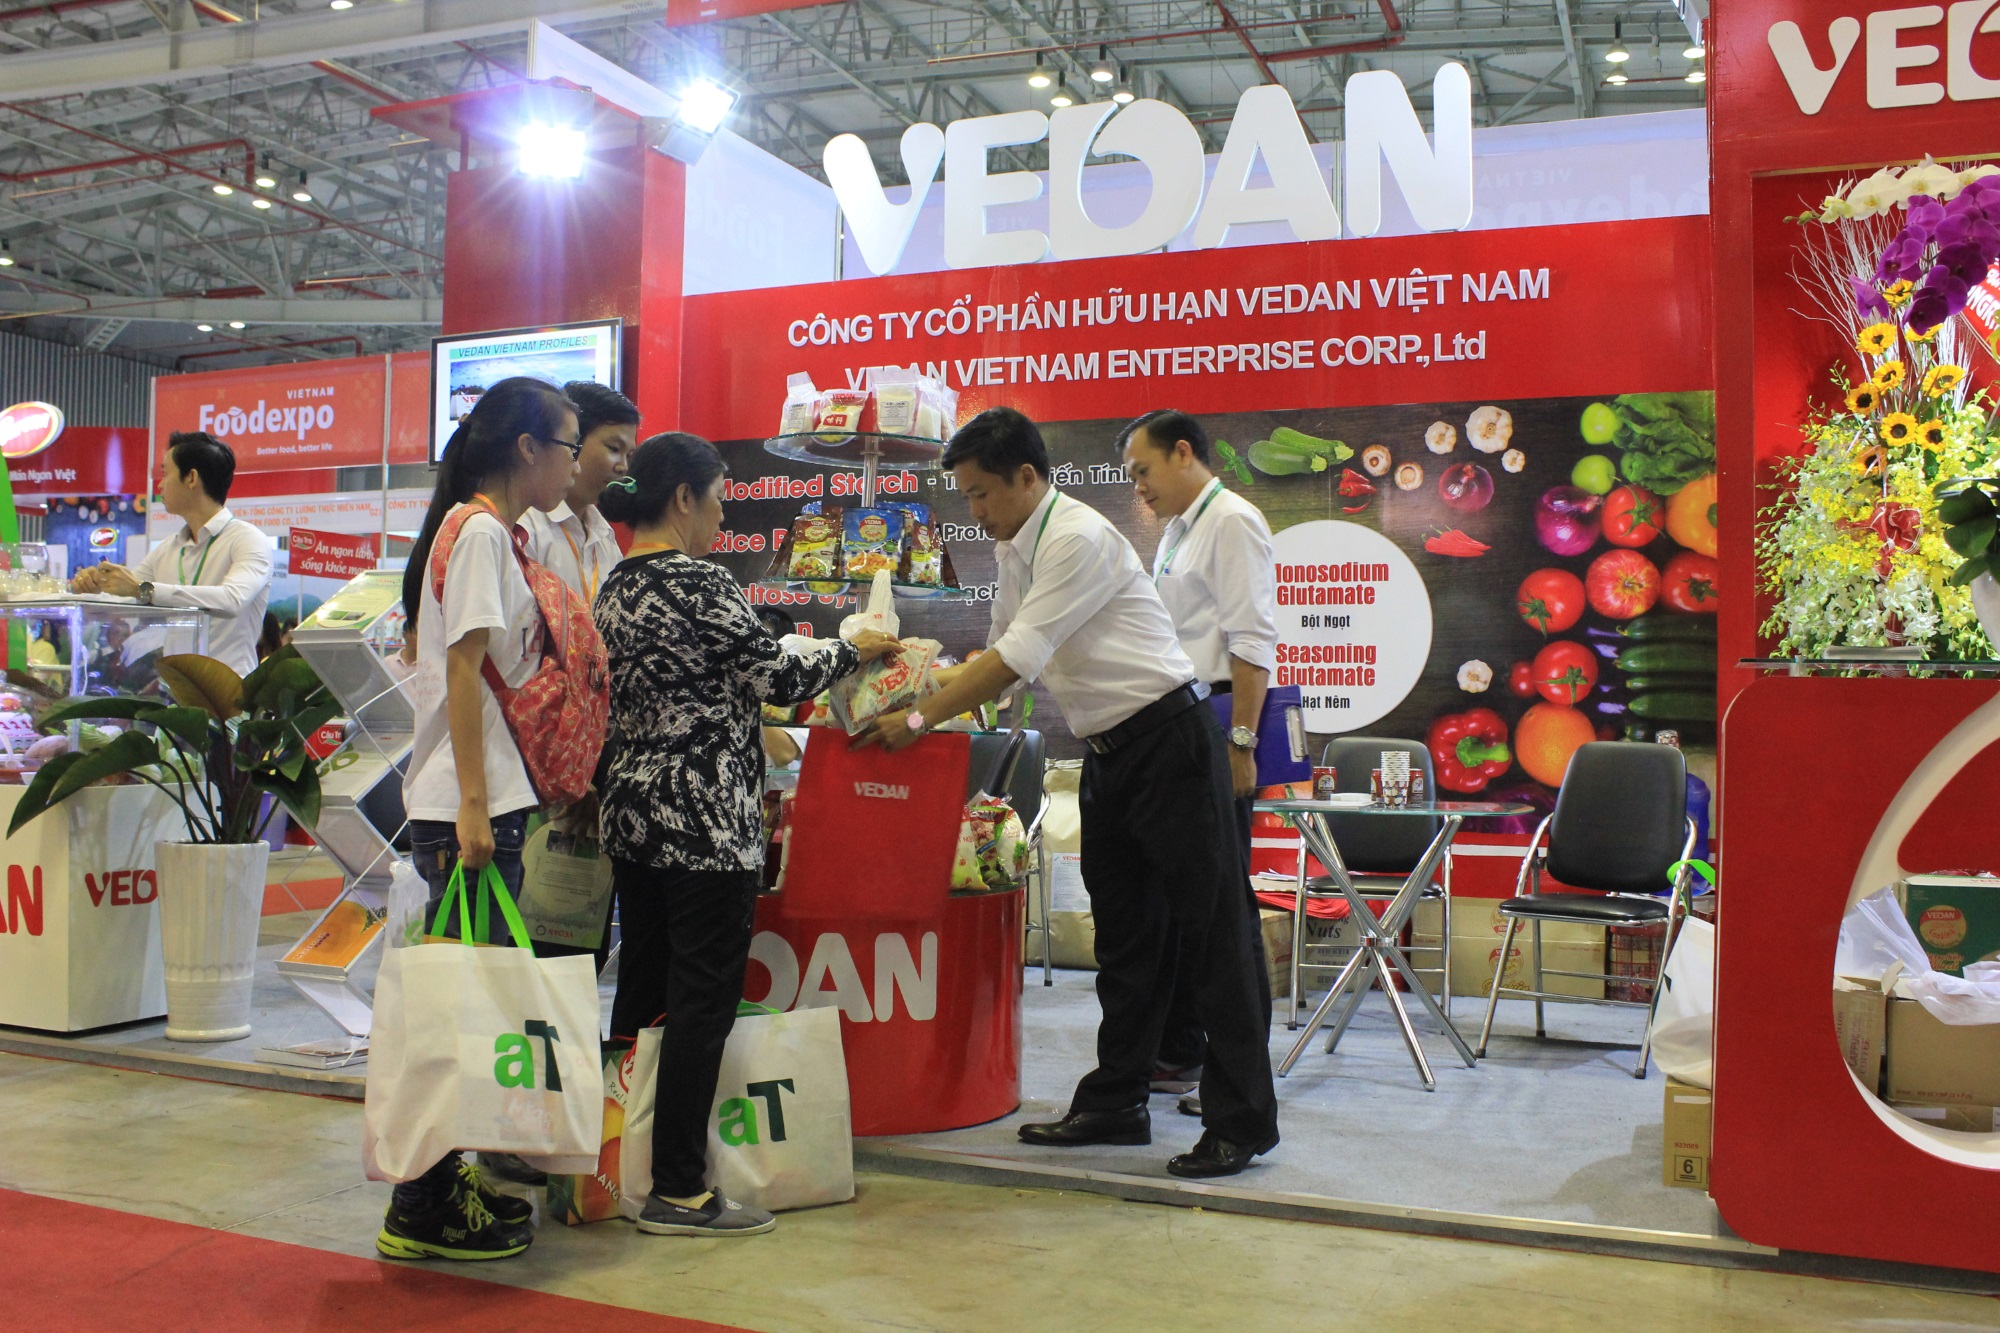 ABOUT VEDAN